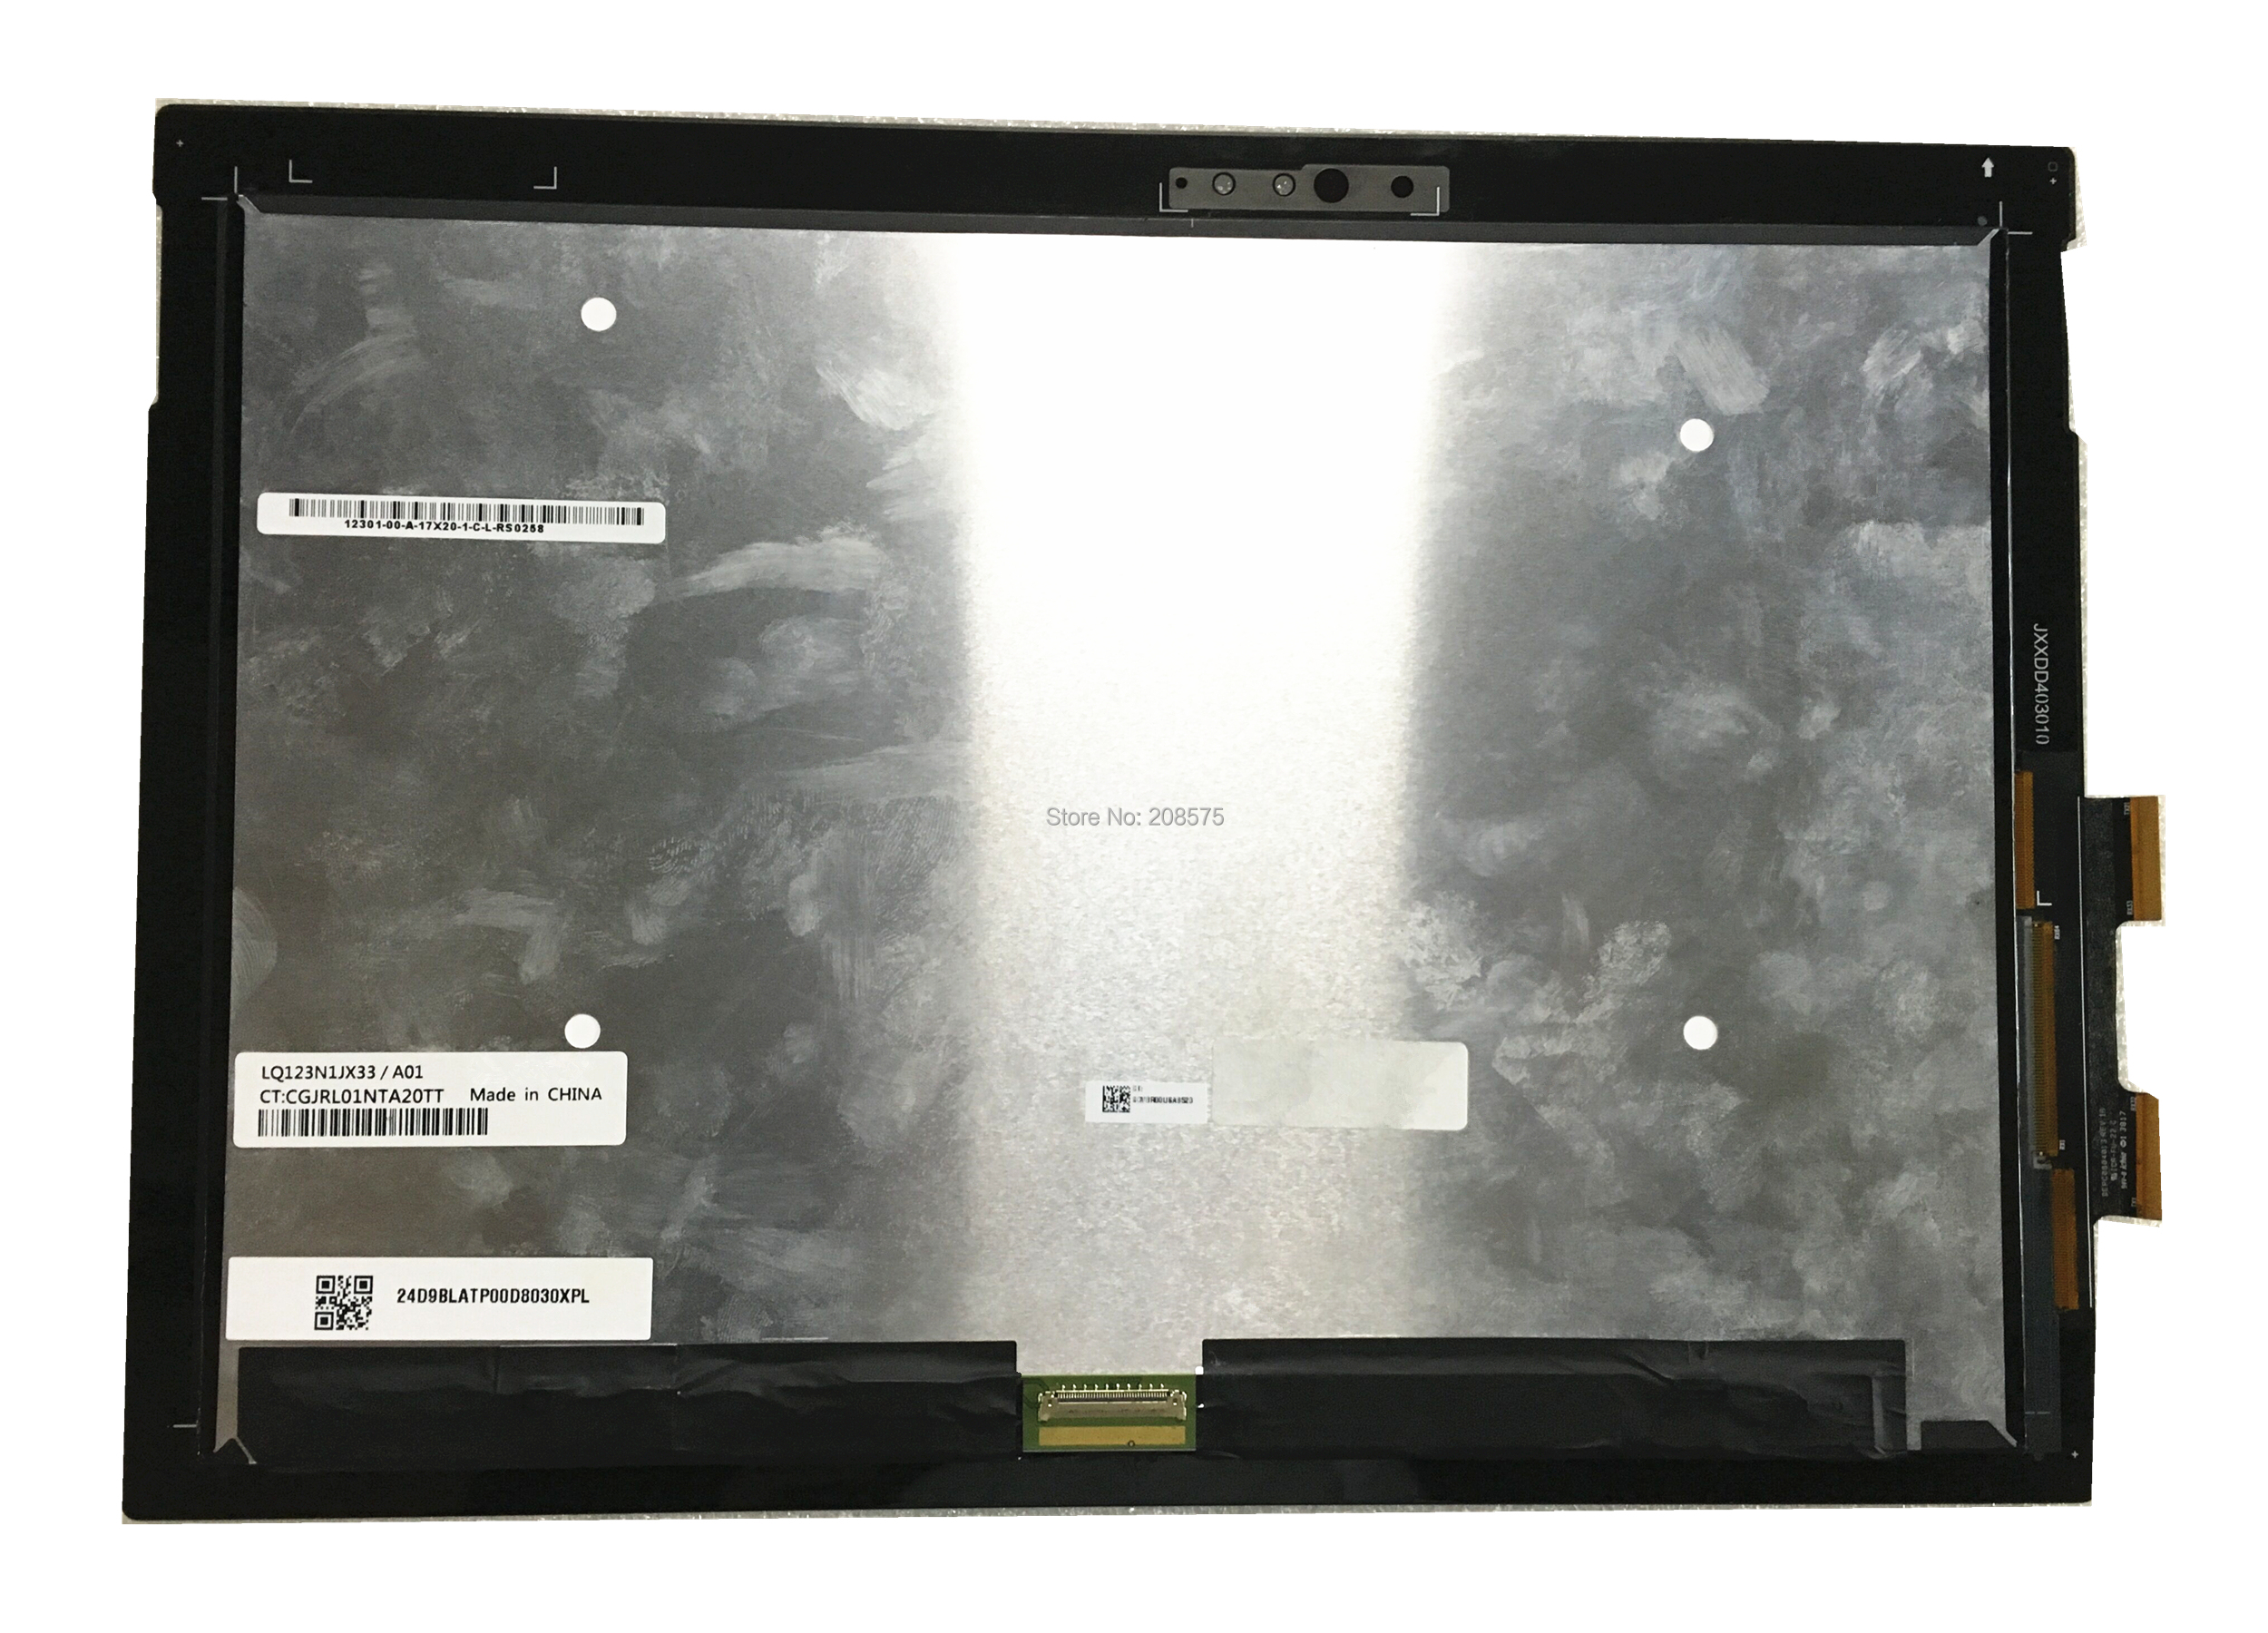 Free shipping 12.3''inch Lcd Screen Assembly LQ123N1JX33/A01 LQ123N1JX33 A01 for HP touch digitizer Assembly CT: CGJRL01NTA20TT 10 1 high quality hsd101pww2 a01 lcd screen for archos 101 xs2 1280 x 800 in stock free shipping